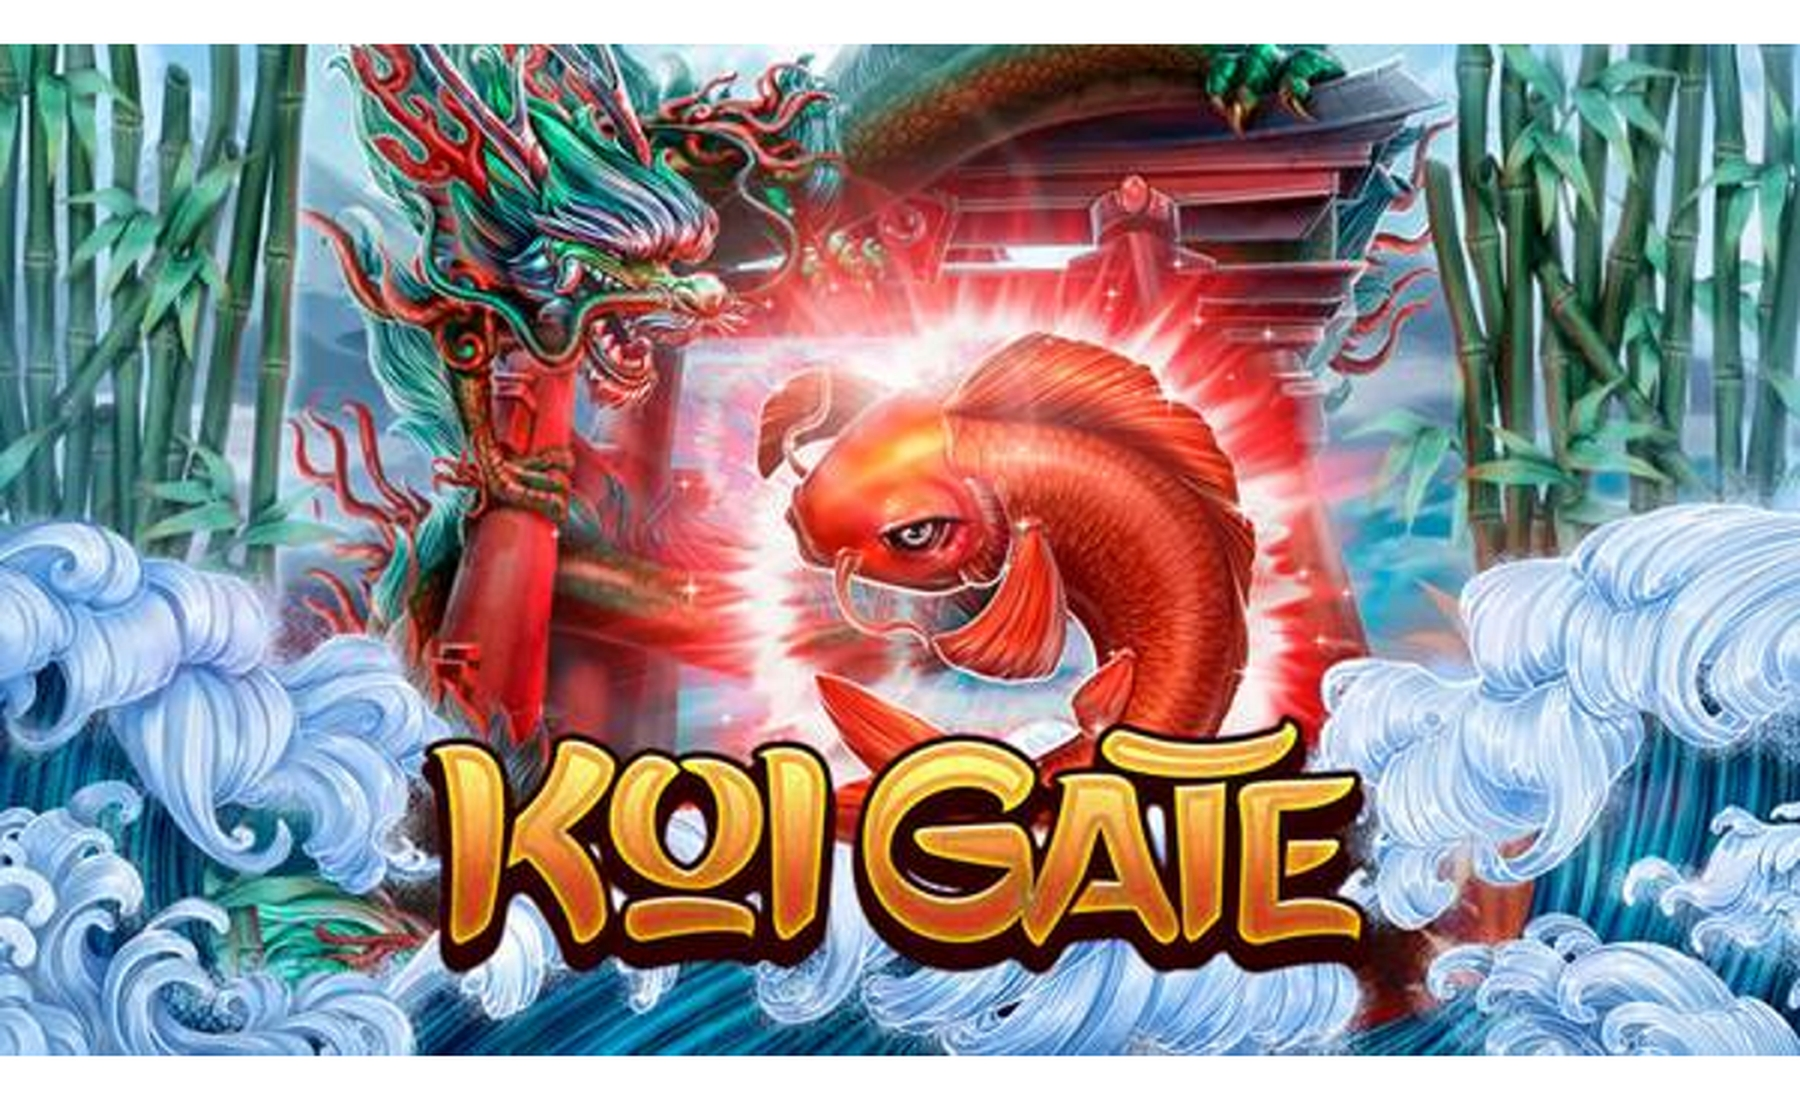 The Koi Gate Online Slot Demo Game by Habanero